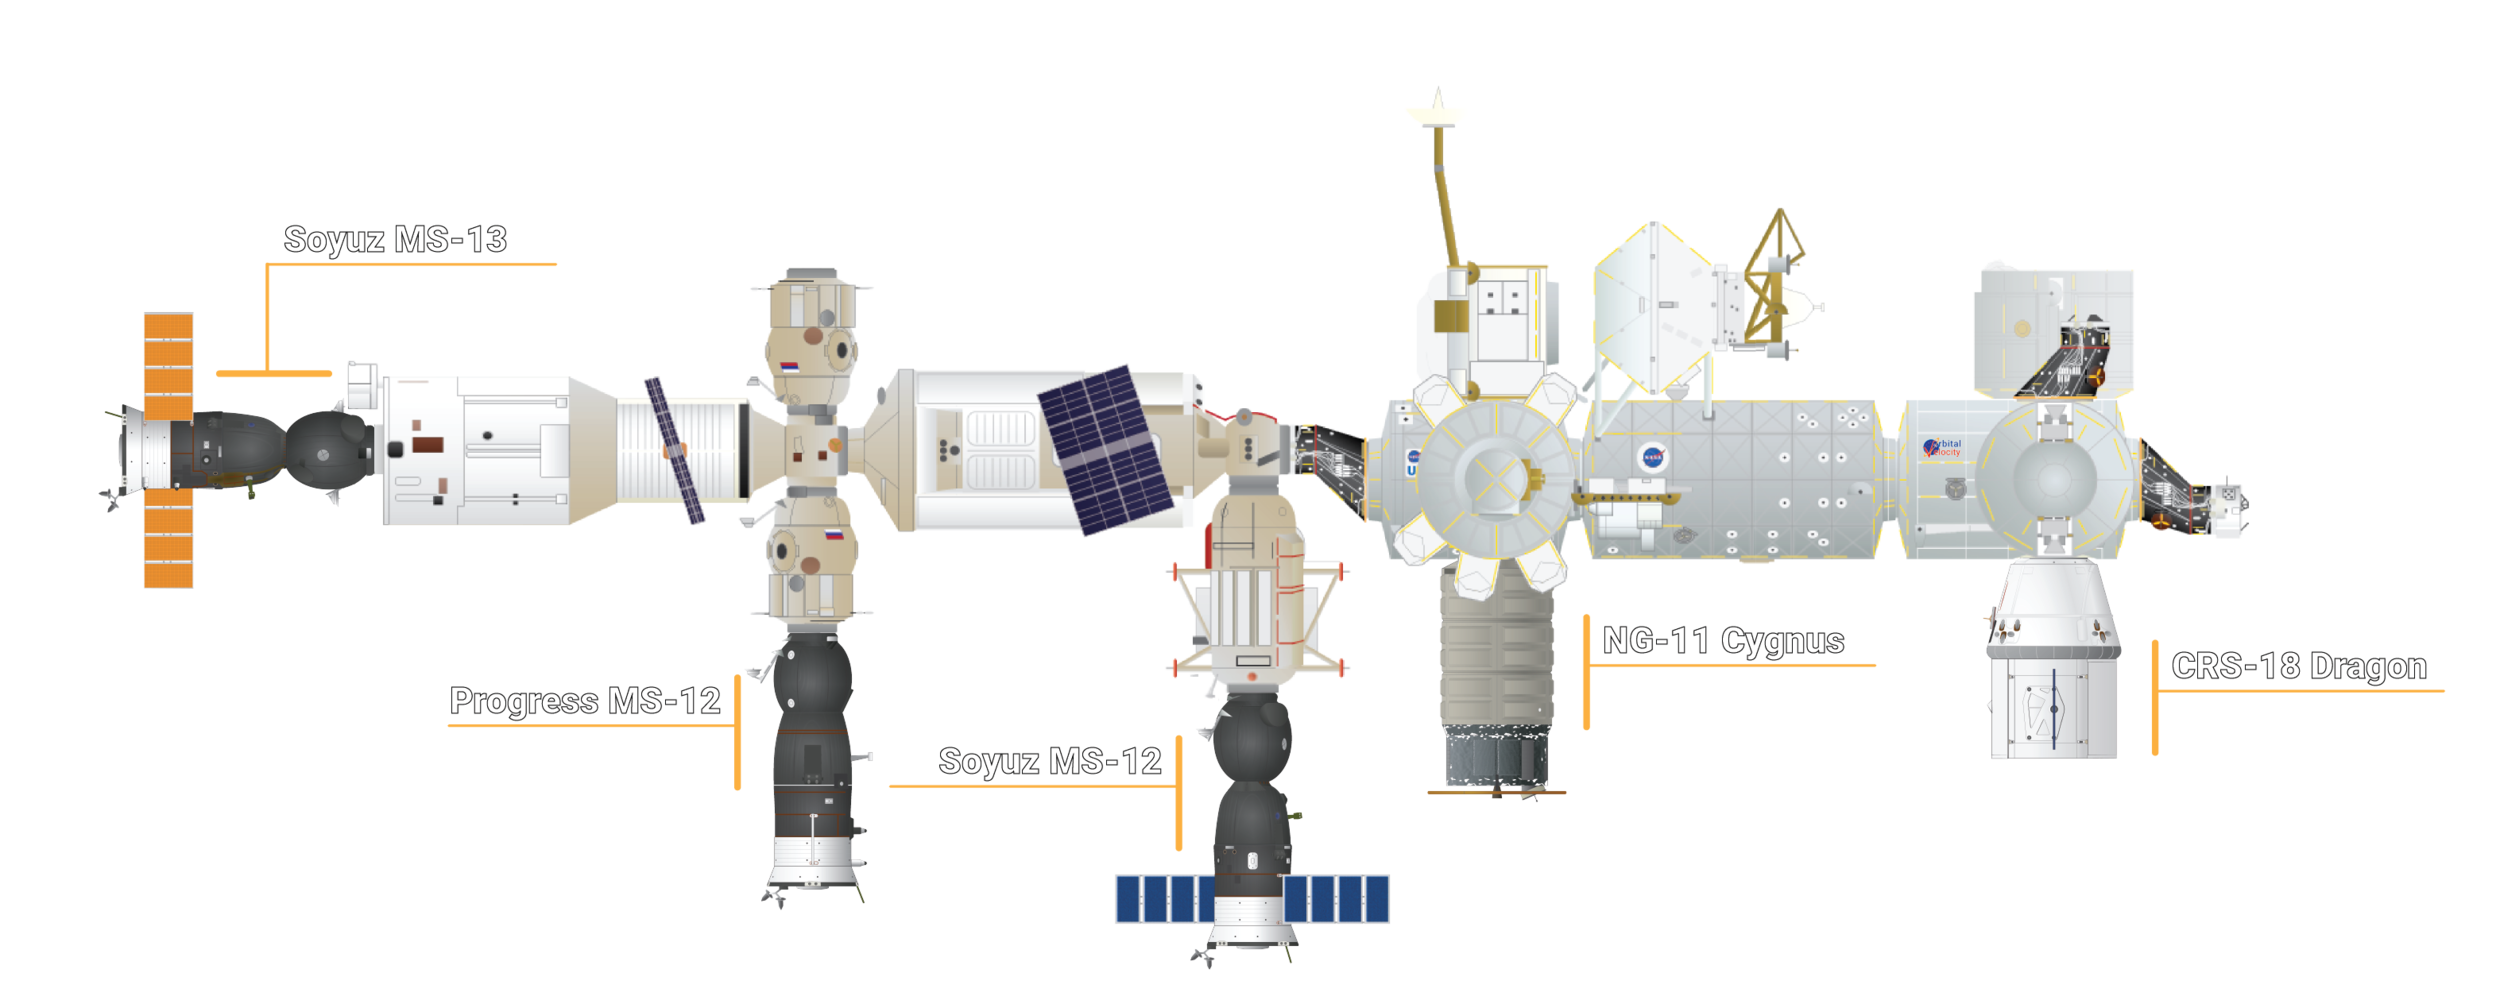 The visiting vehicles docked or berthed with the ISS at the end of July 2019. Credit: Orbital Velocity